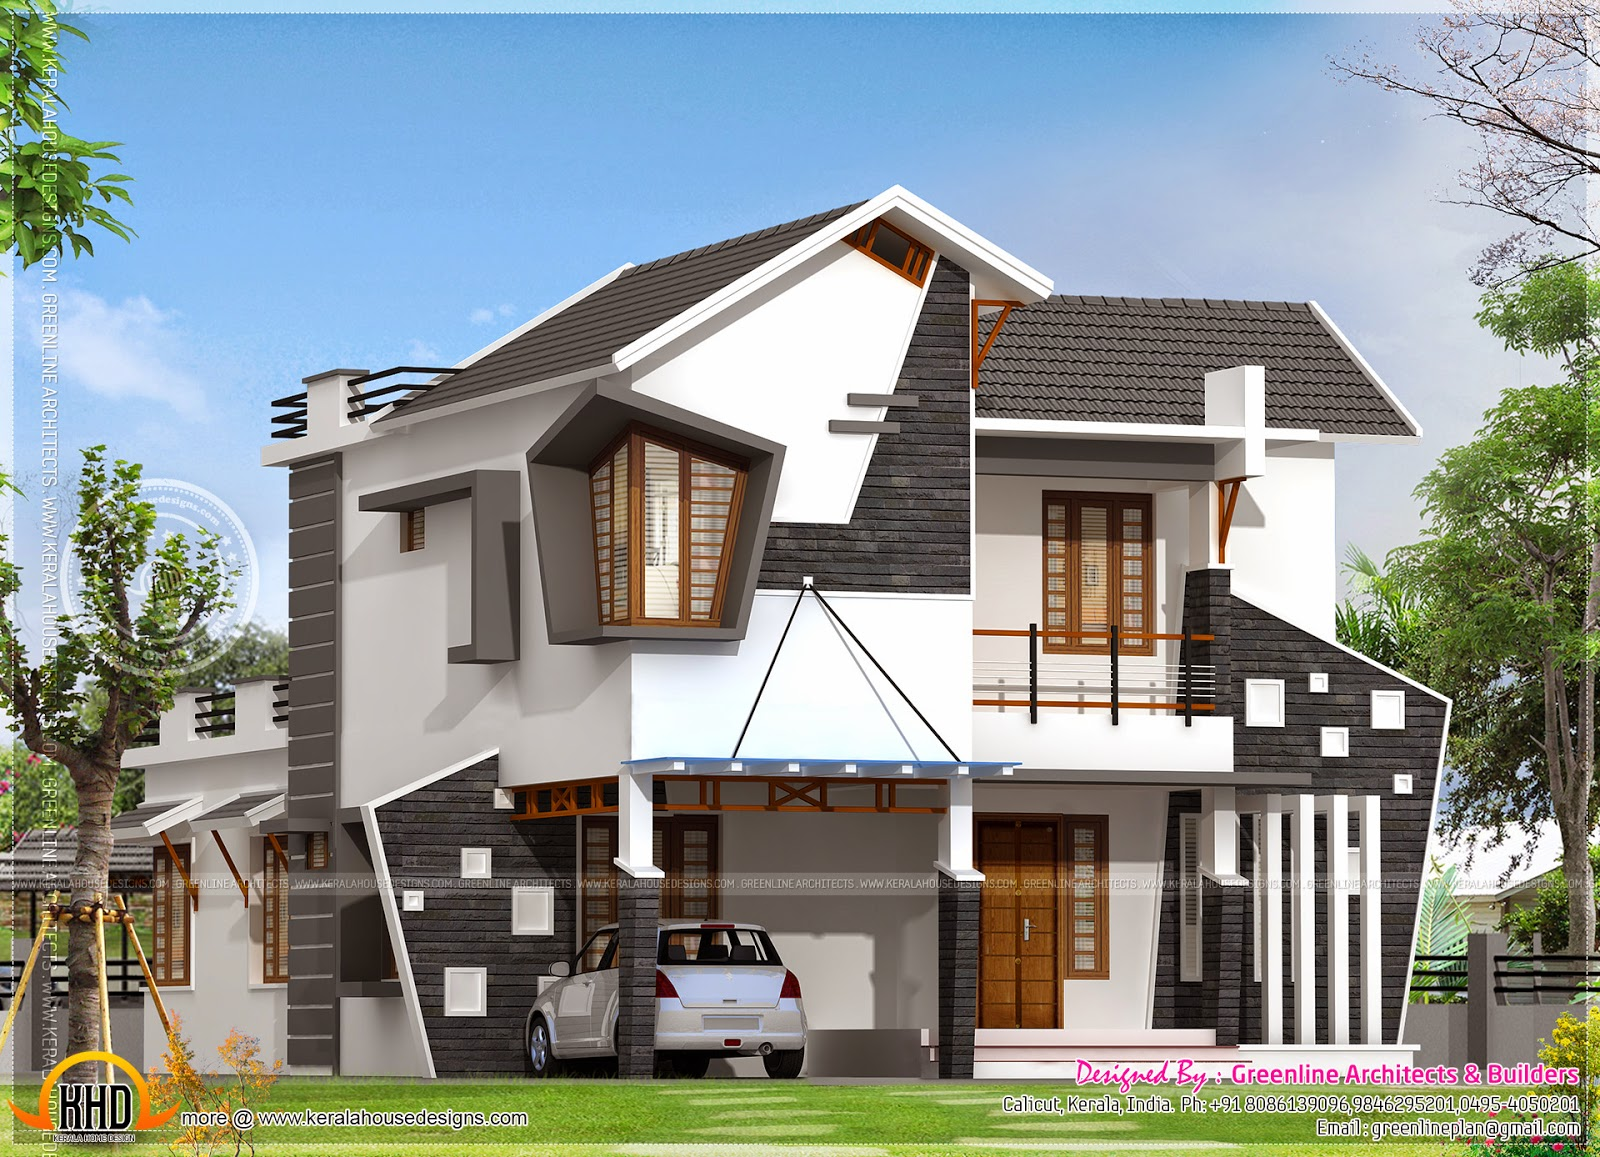 Unique house exterior in 2154 square feet kerala home for Unusual house plans